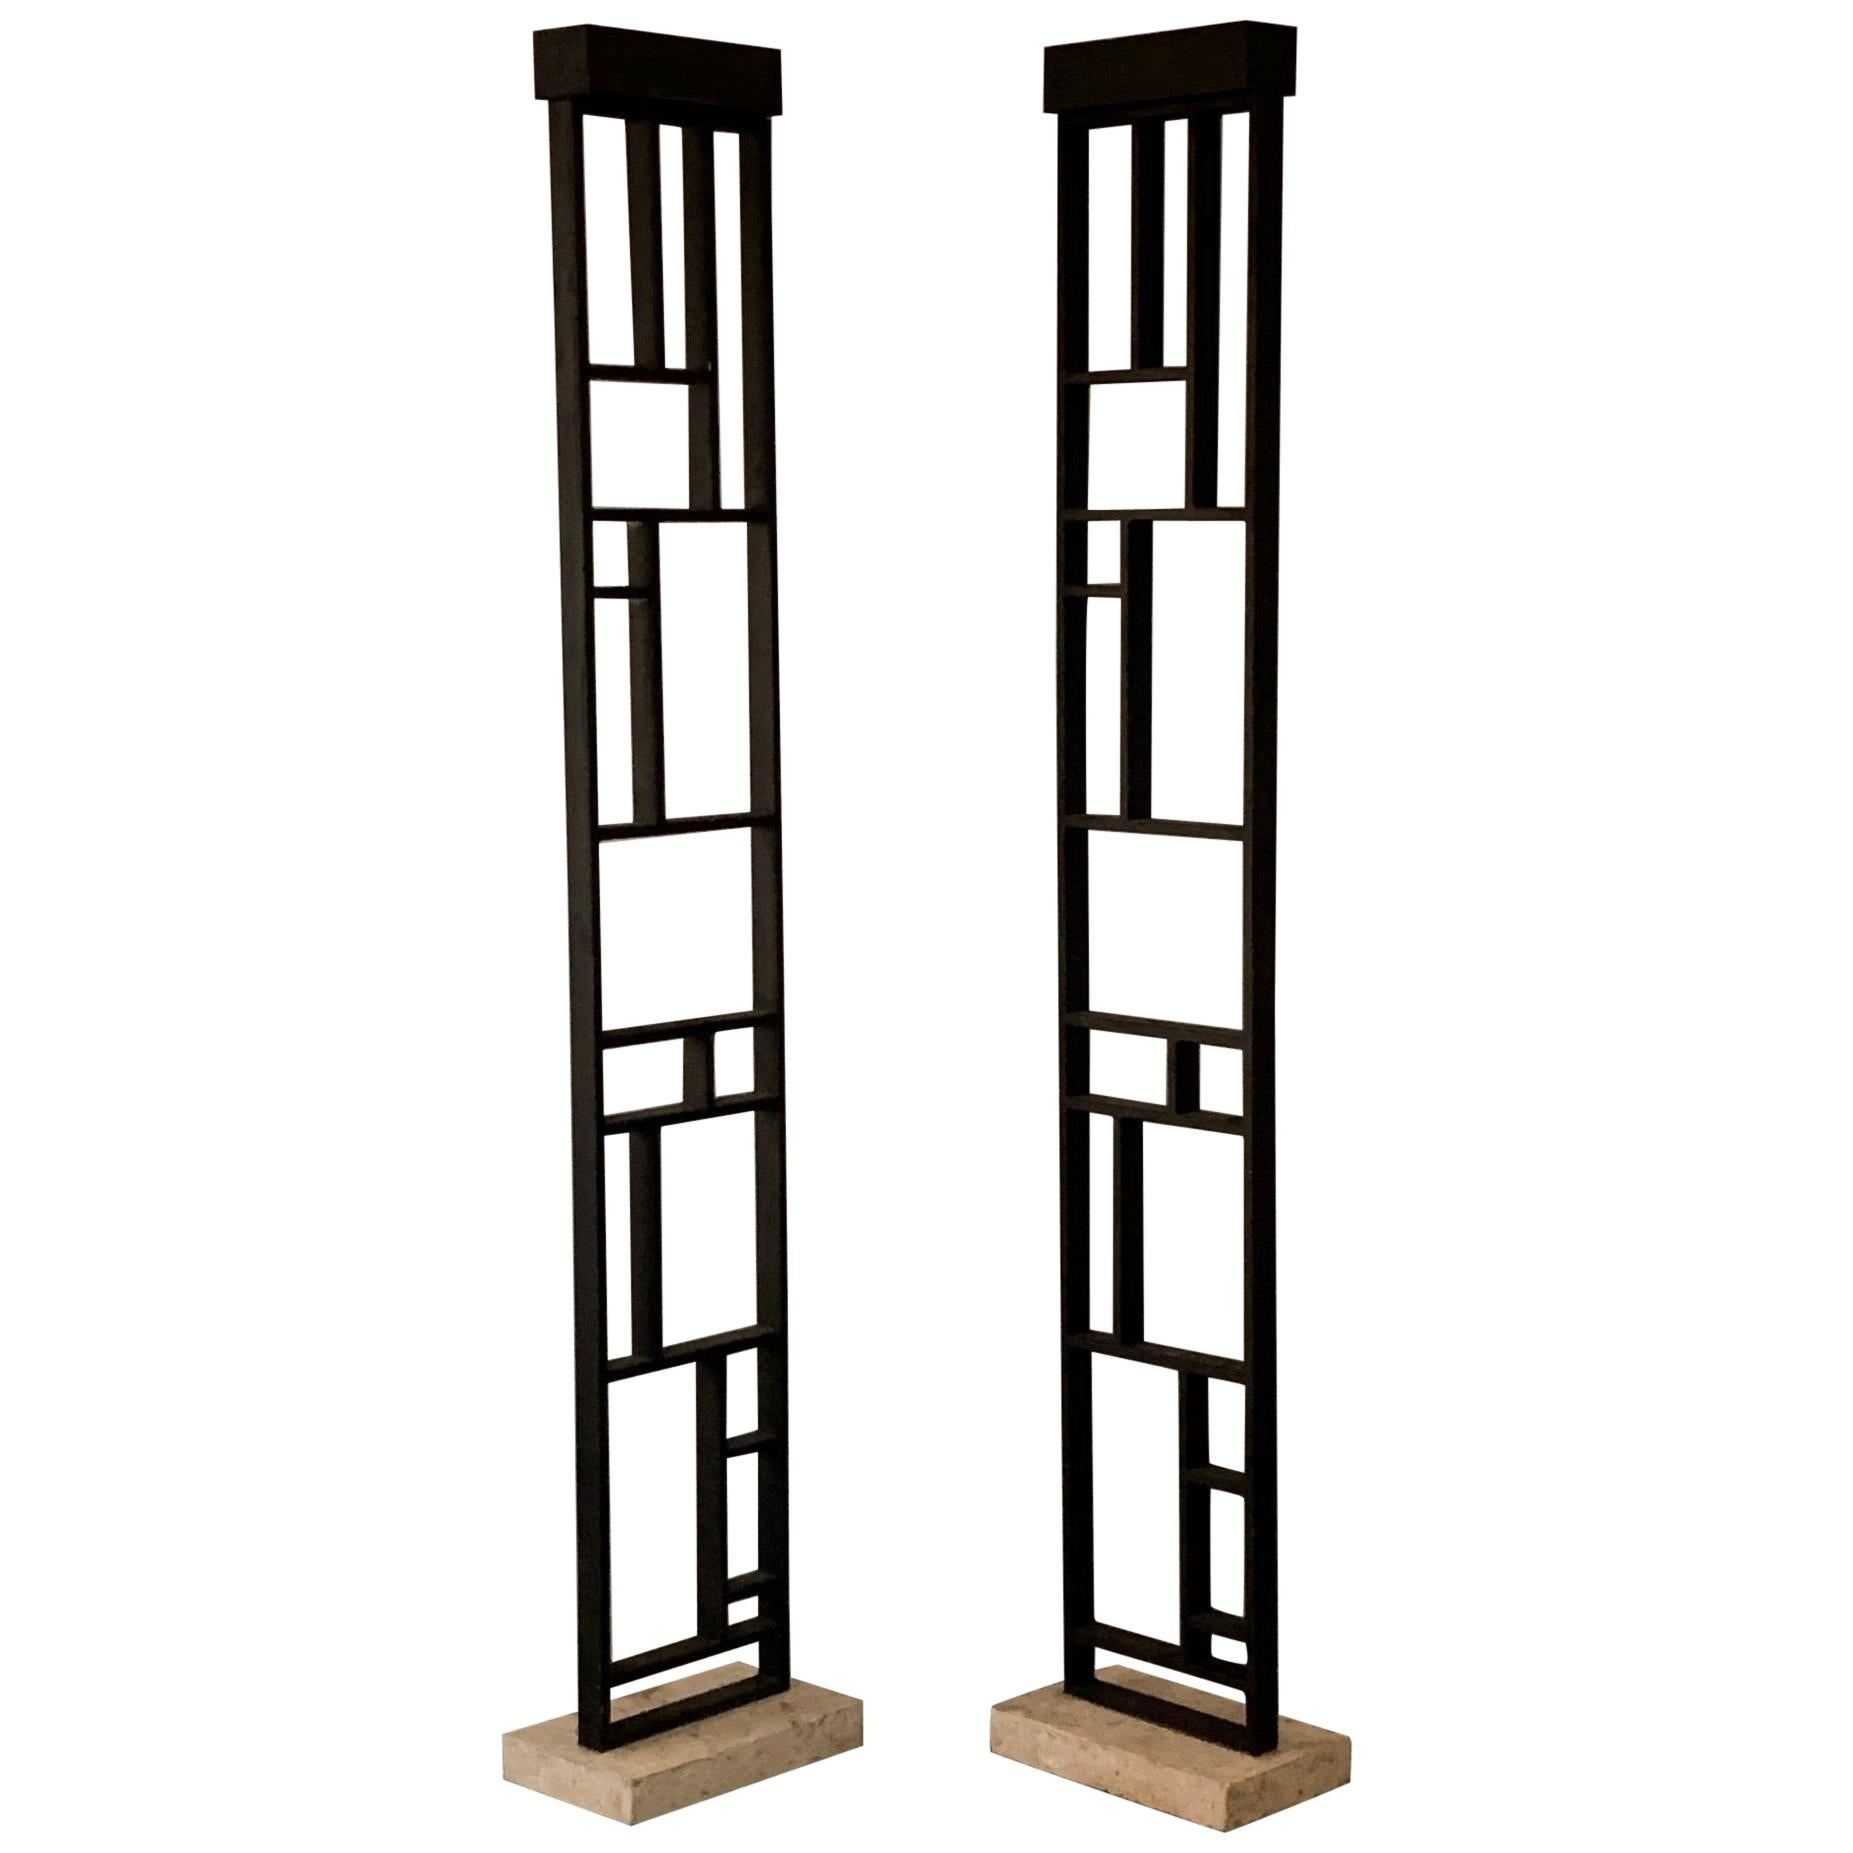 Pair of Unusual Architectural Lamps with Travertine Bases